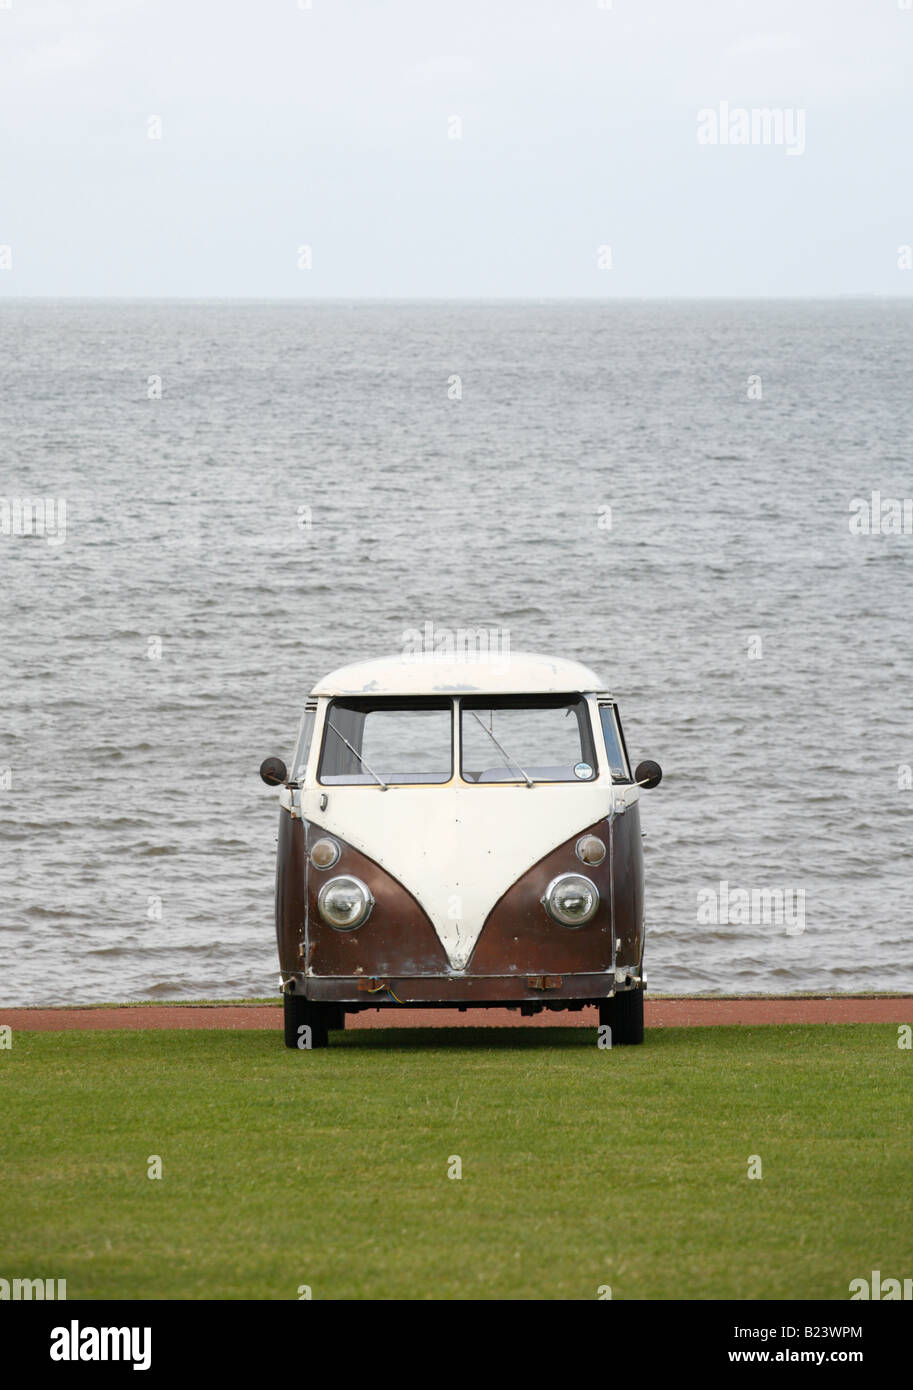 A VW camper van parked on a green at the seaside Hunstanton, England. - Stock Image